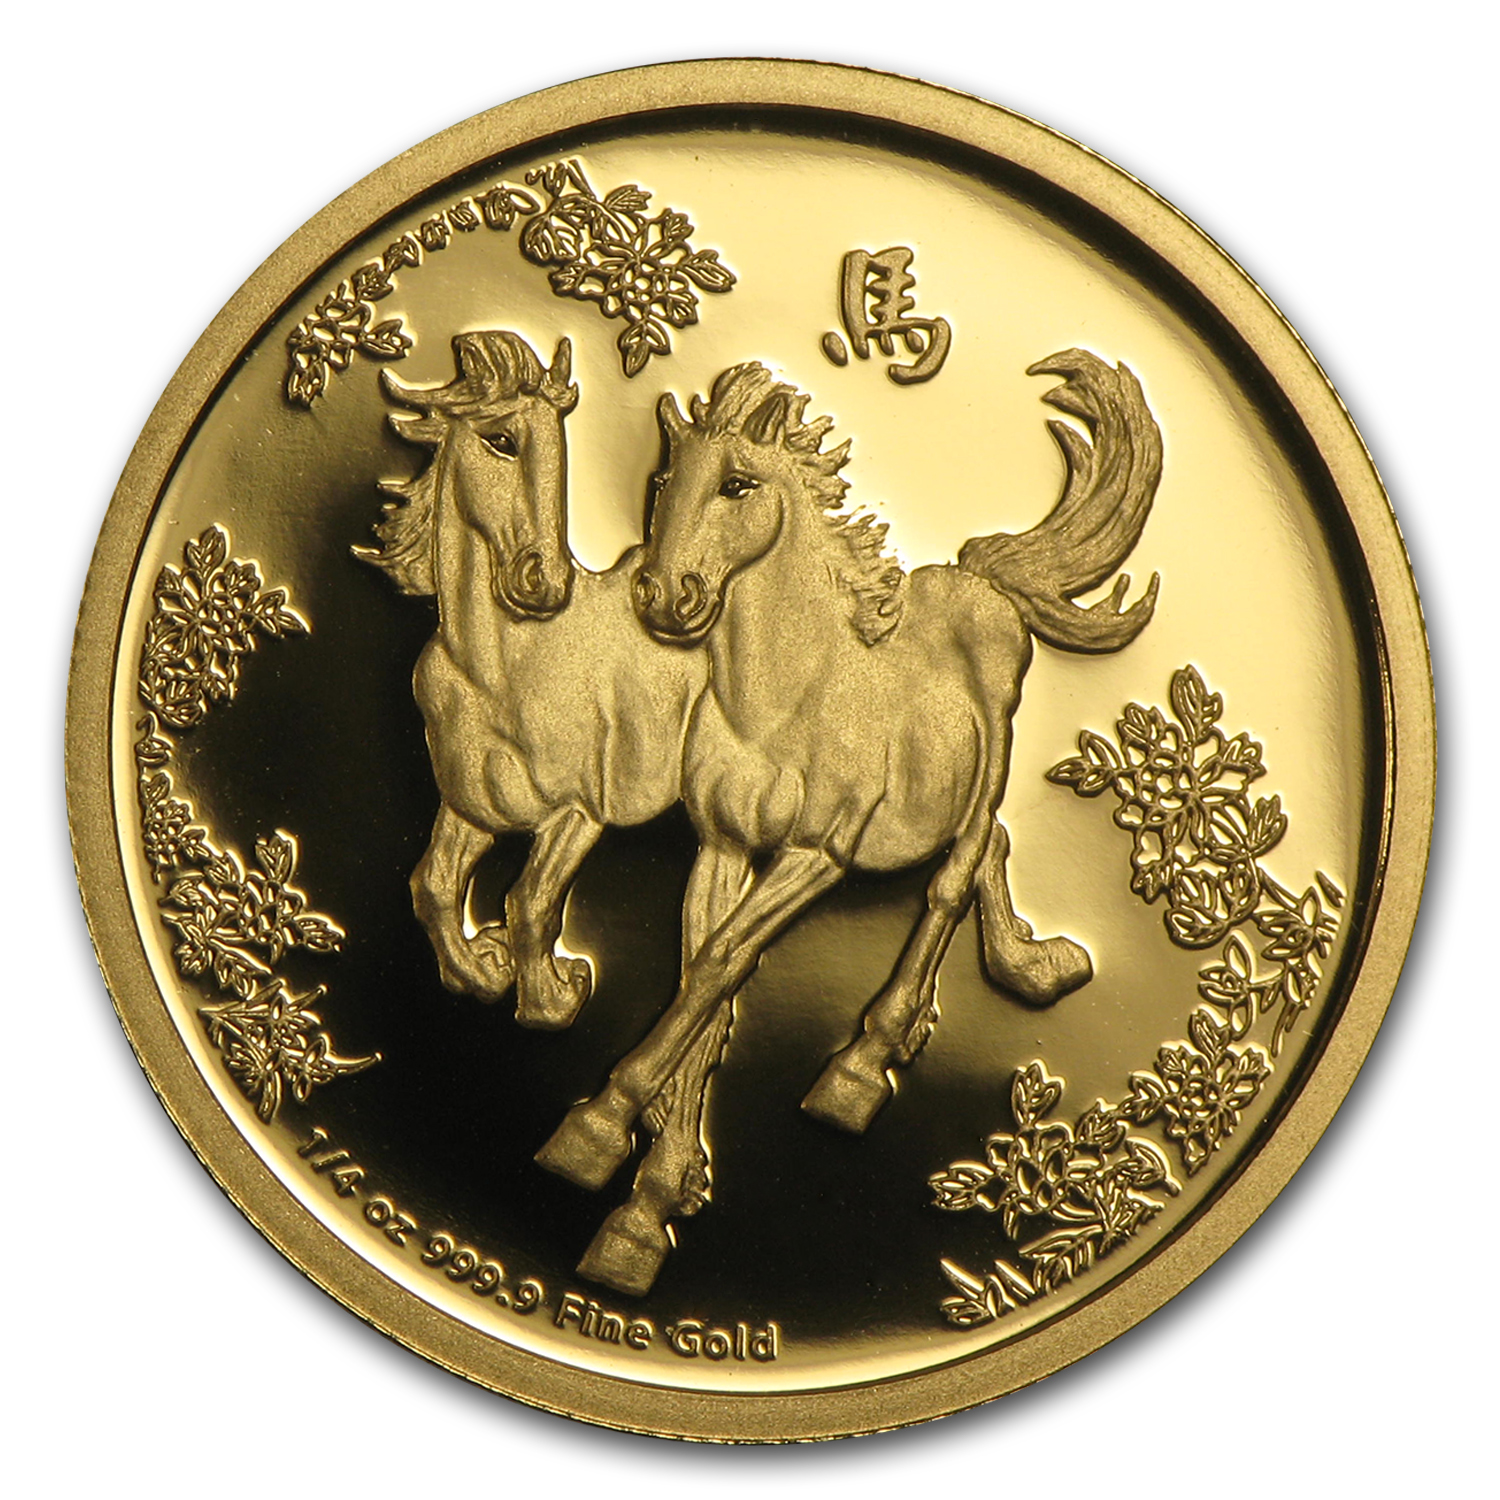 2015 Niue 1/4 oz Proof Gold $25 Feng Shui Horse